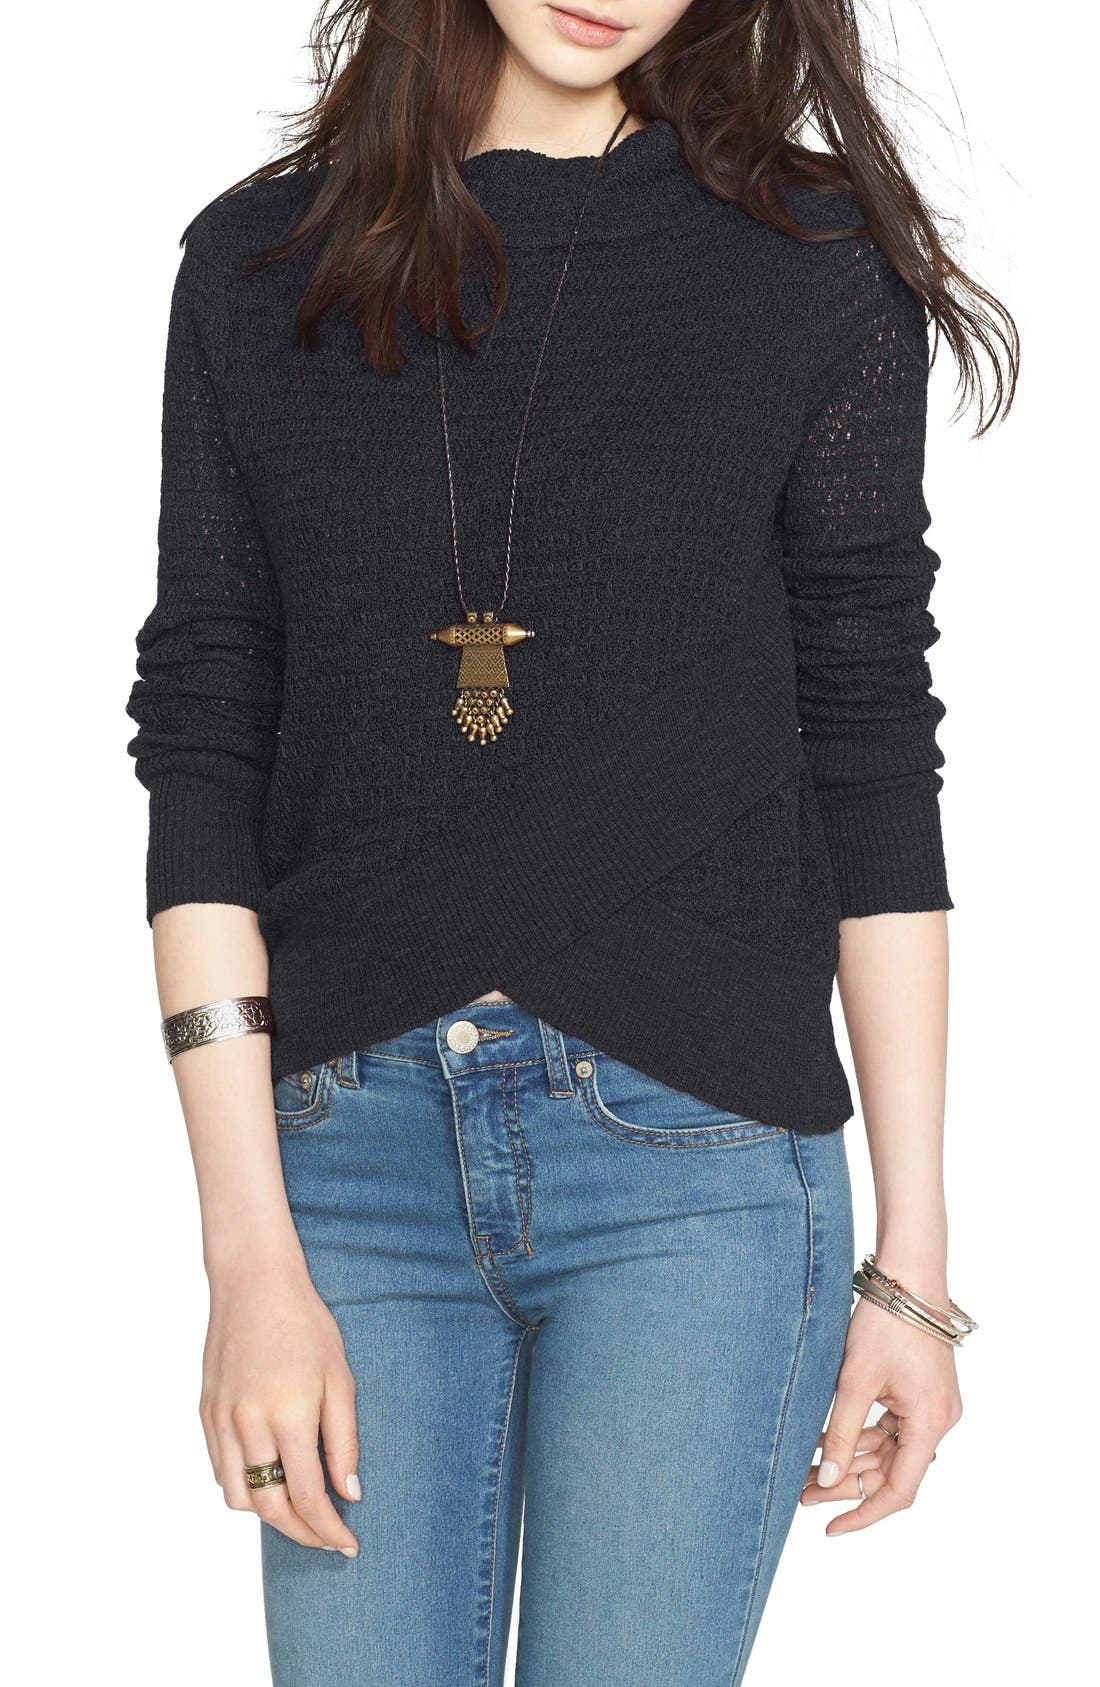 FREE PEOPLE, Crossover Sweater, Main thumbnail 1, color, 001